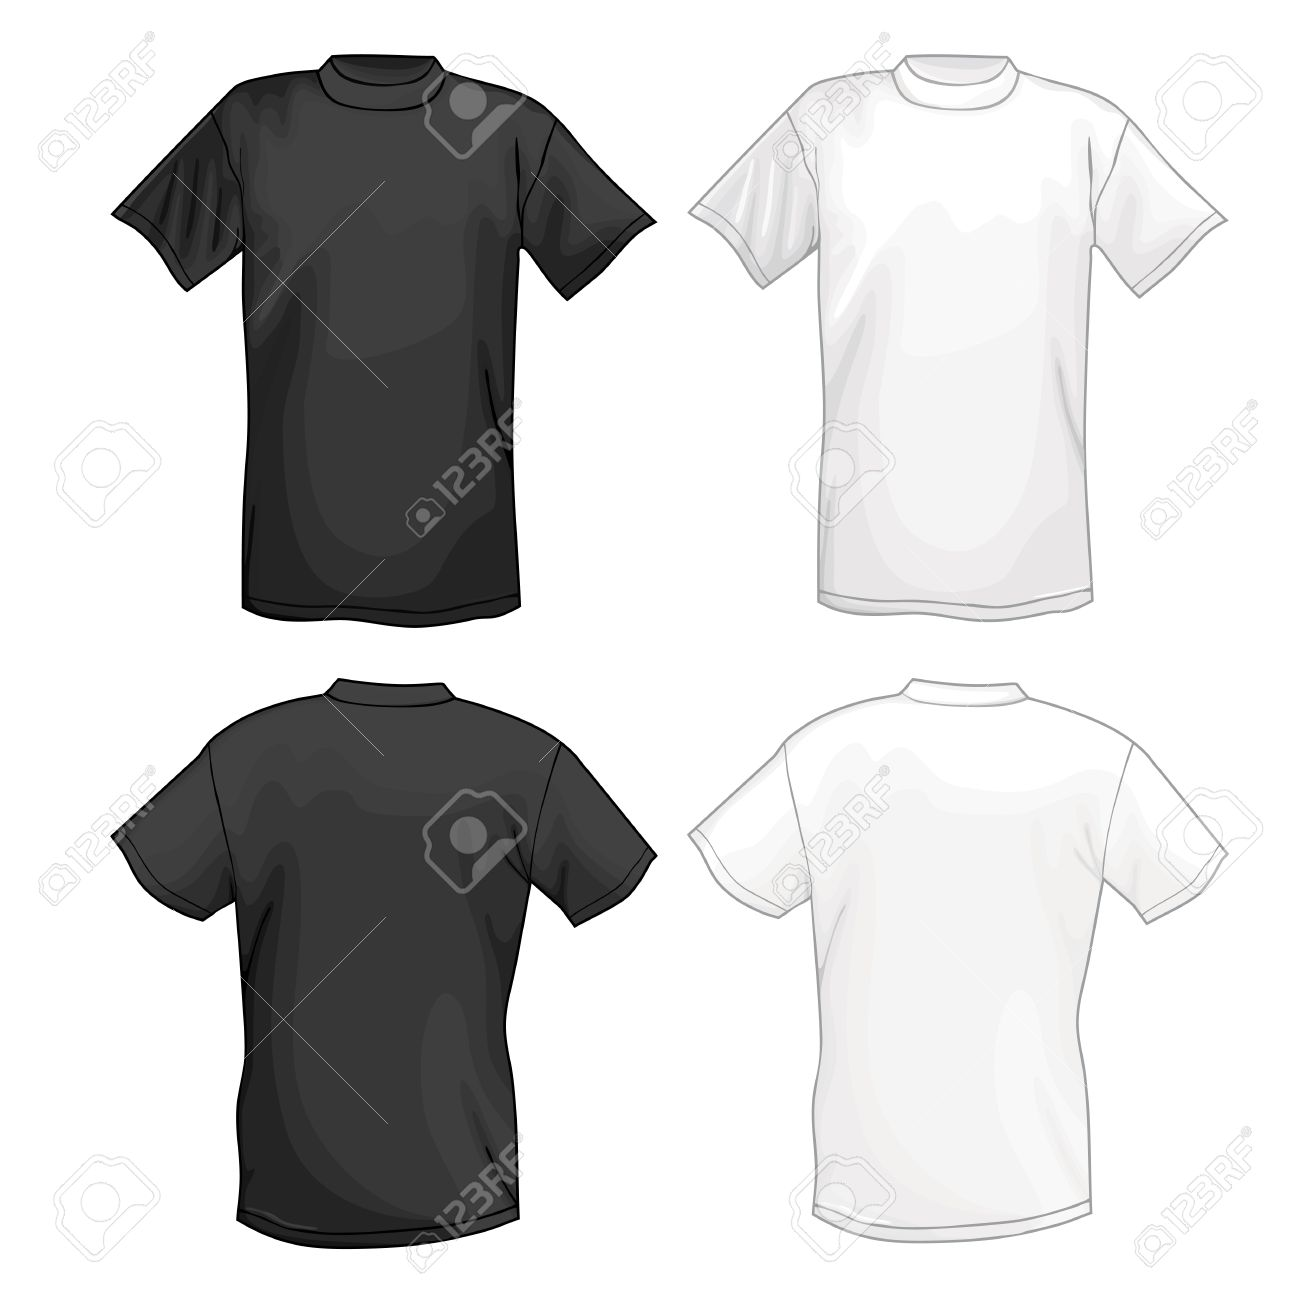 White t shirt front and back template - Vector White And Black Vector T Shirt Design Template Front Back Vector Illustration Isolated On White Background